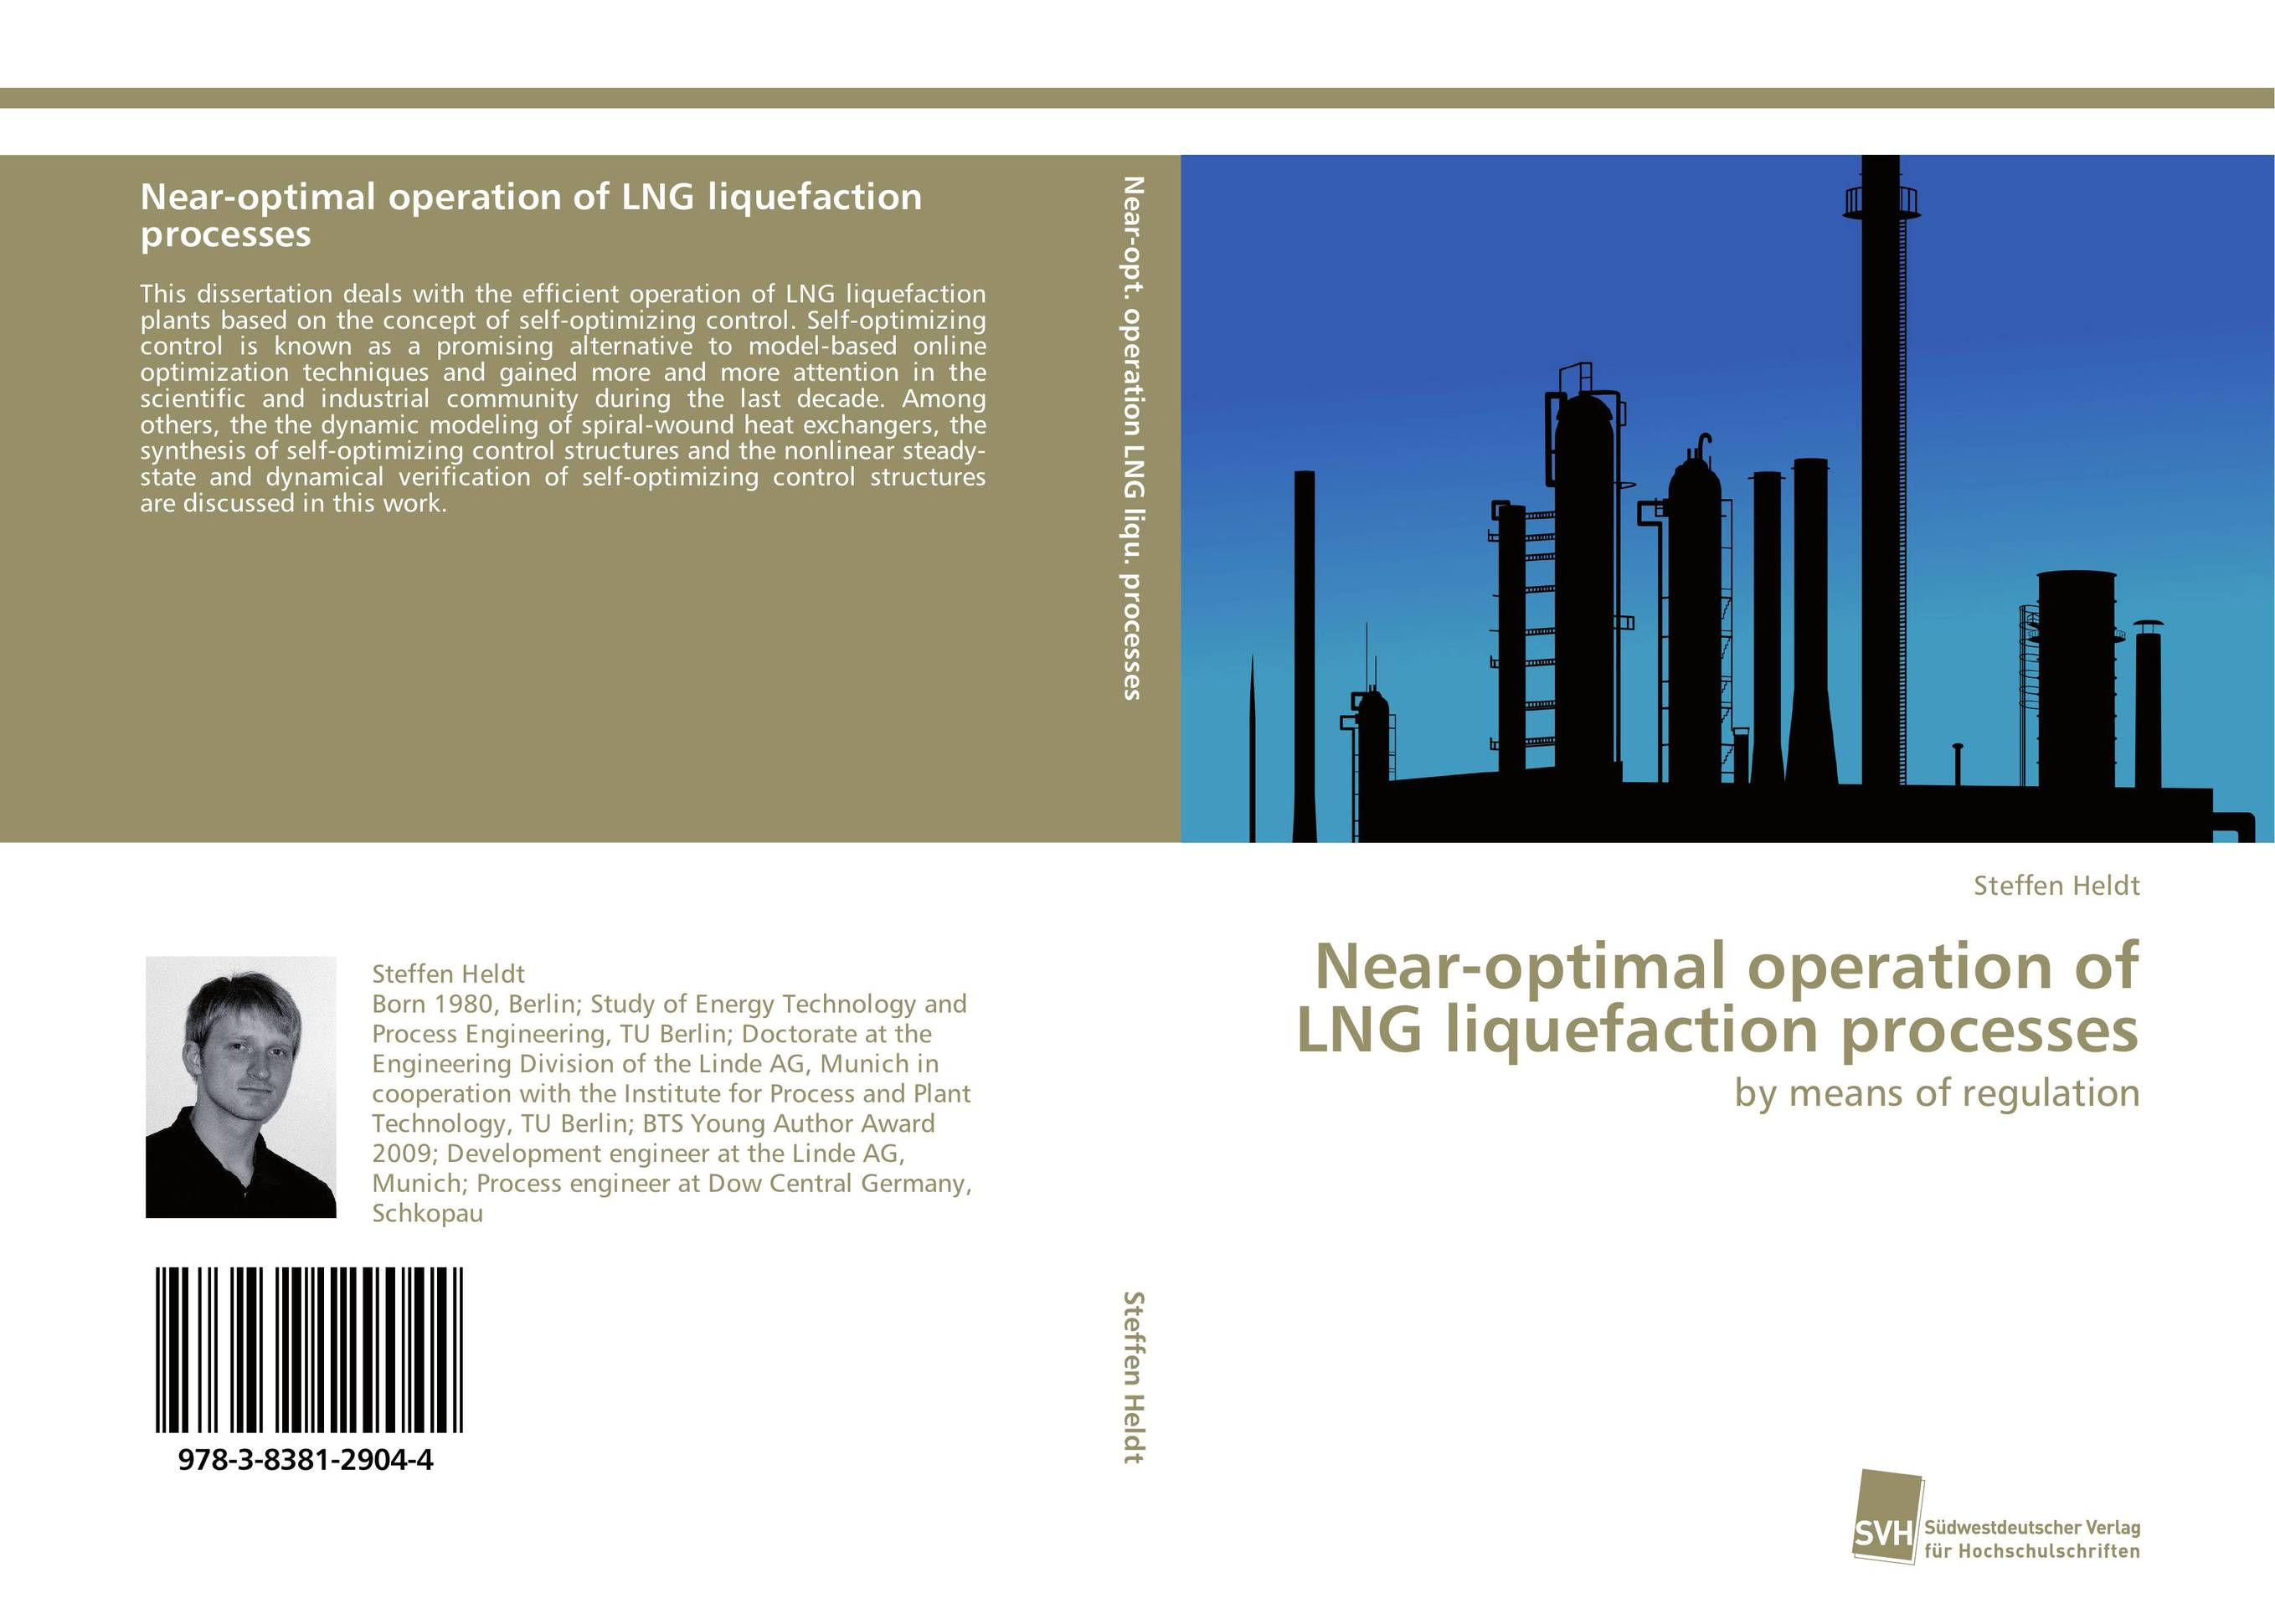 Near-optimal operation of LNG liquefaction processes marc vollenweider mind machine a decision model for optimizing and implementing analytics